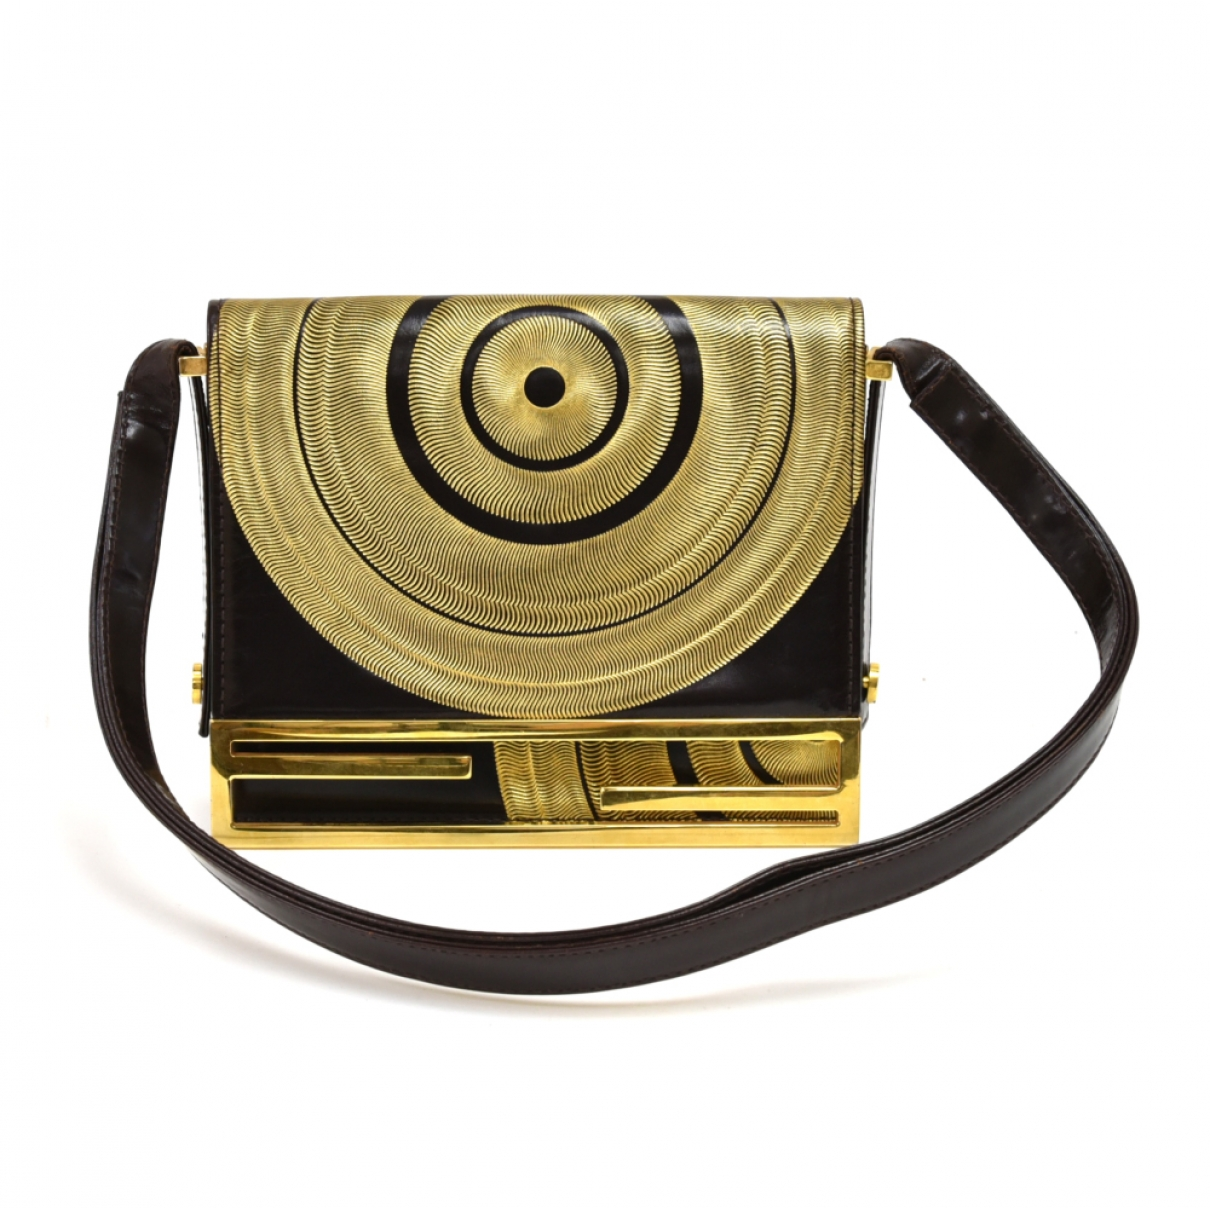 Fendi \N Handtasche in  Gold Metall